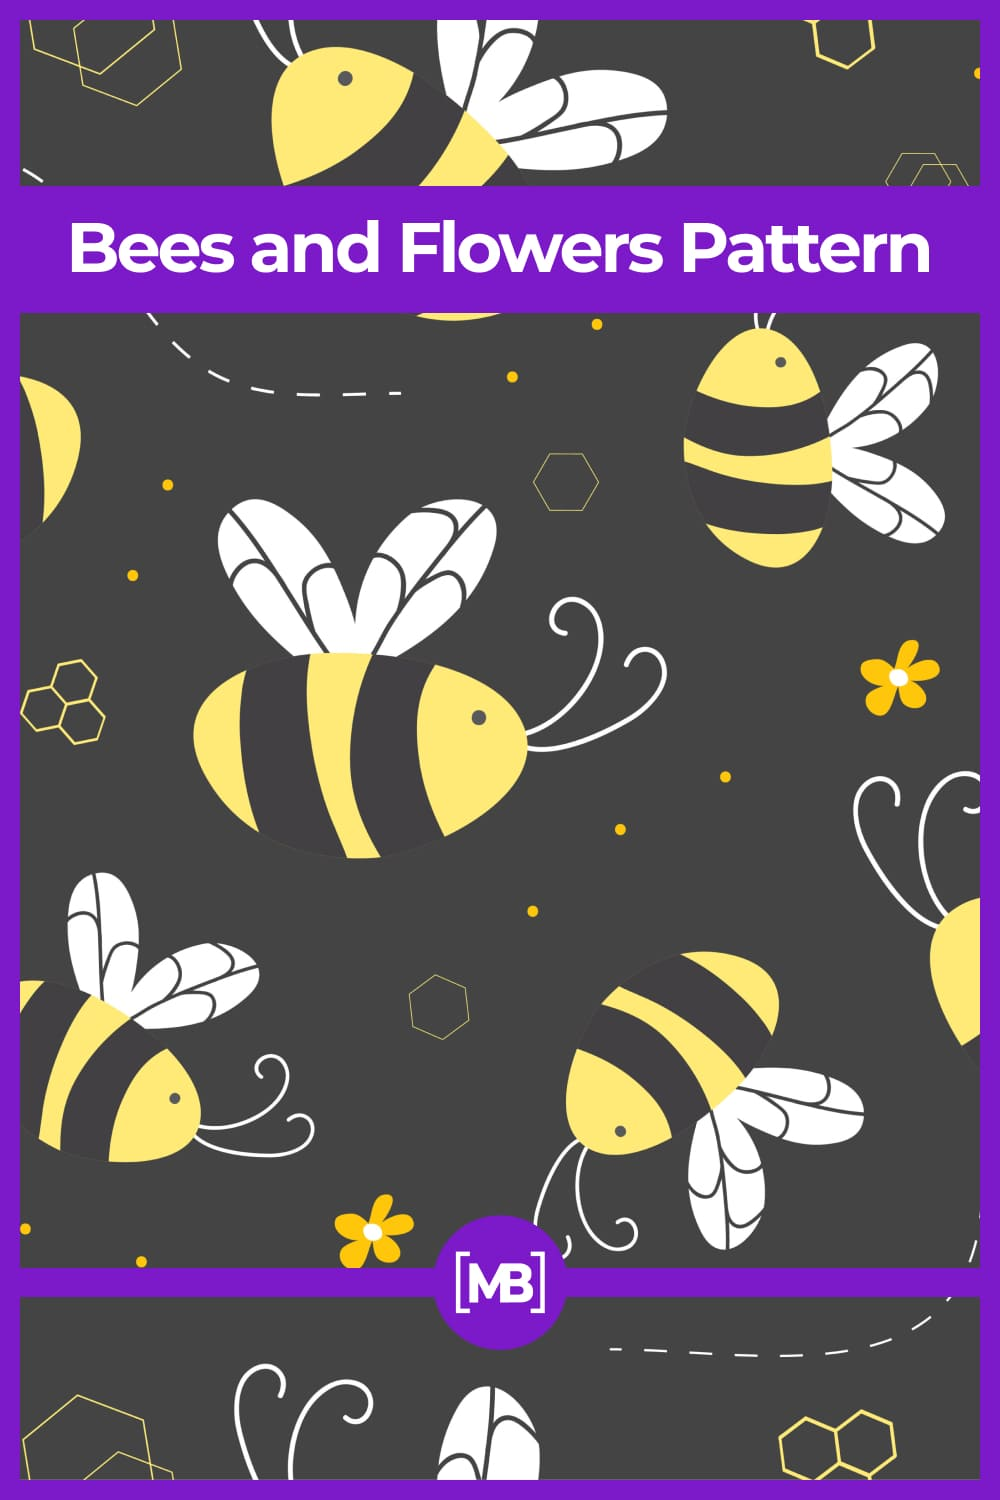 Bees and Flowers Pattern.